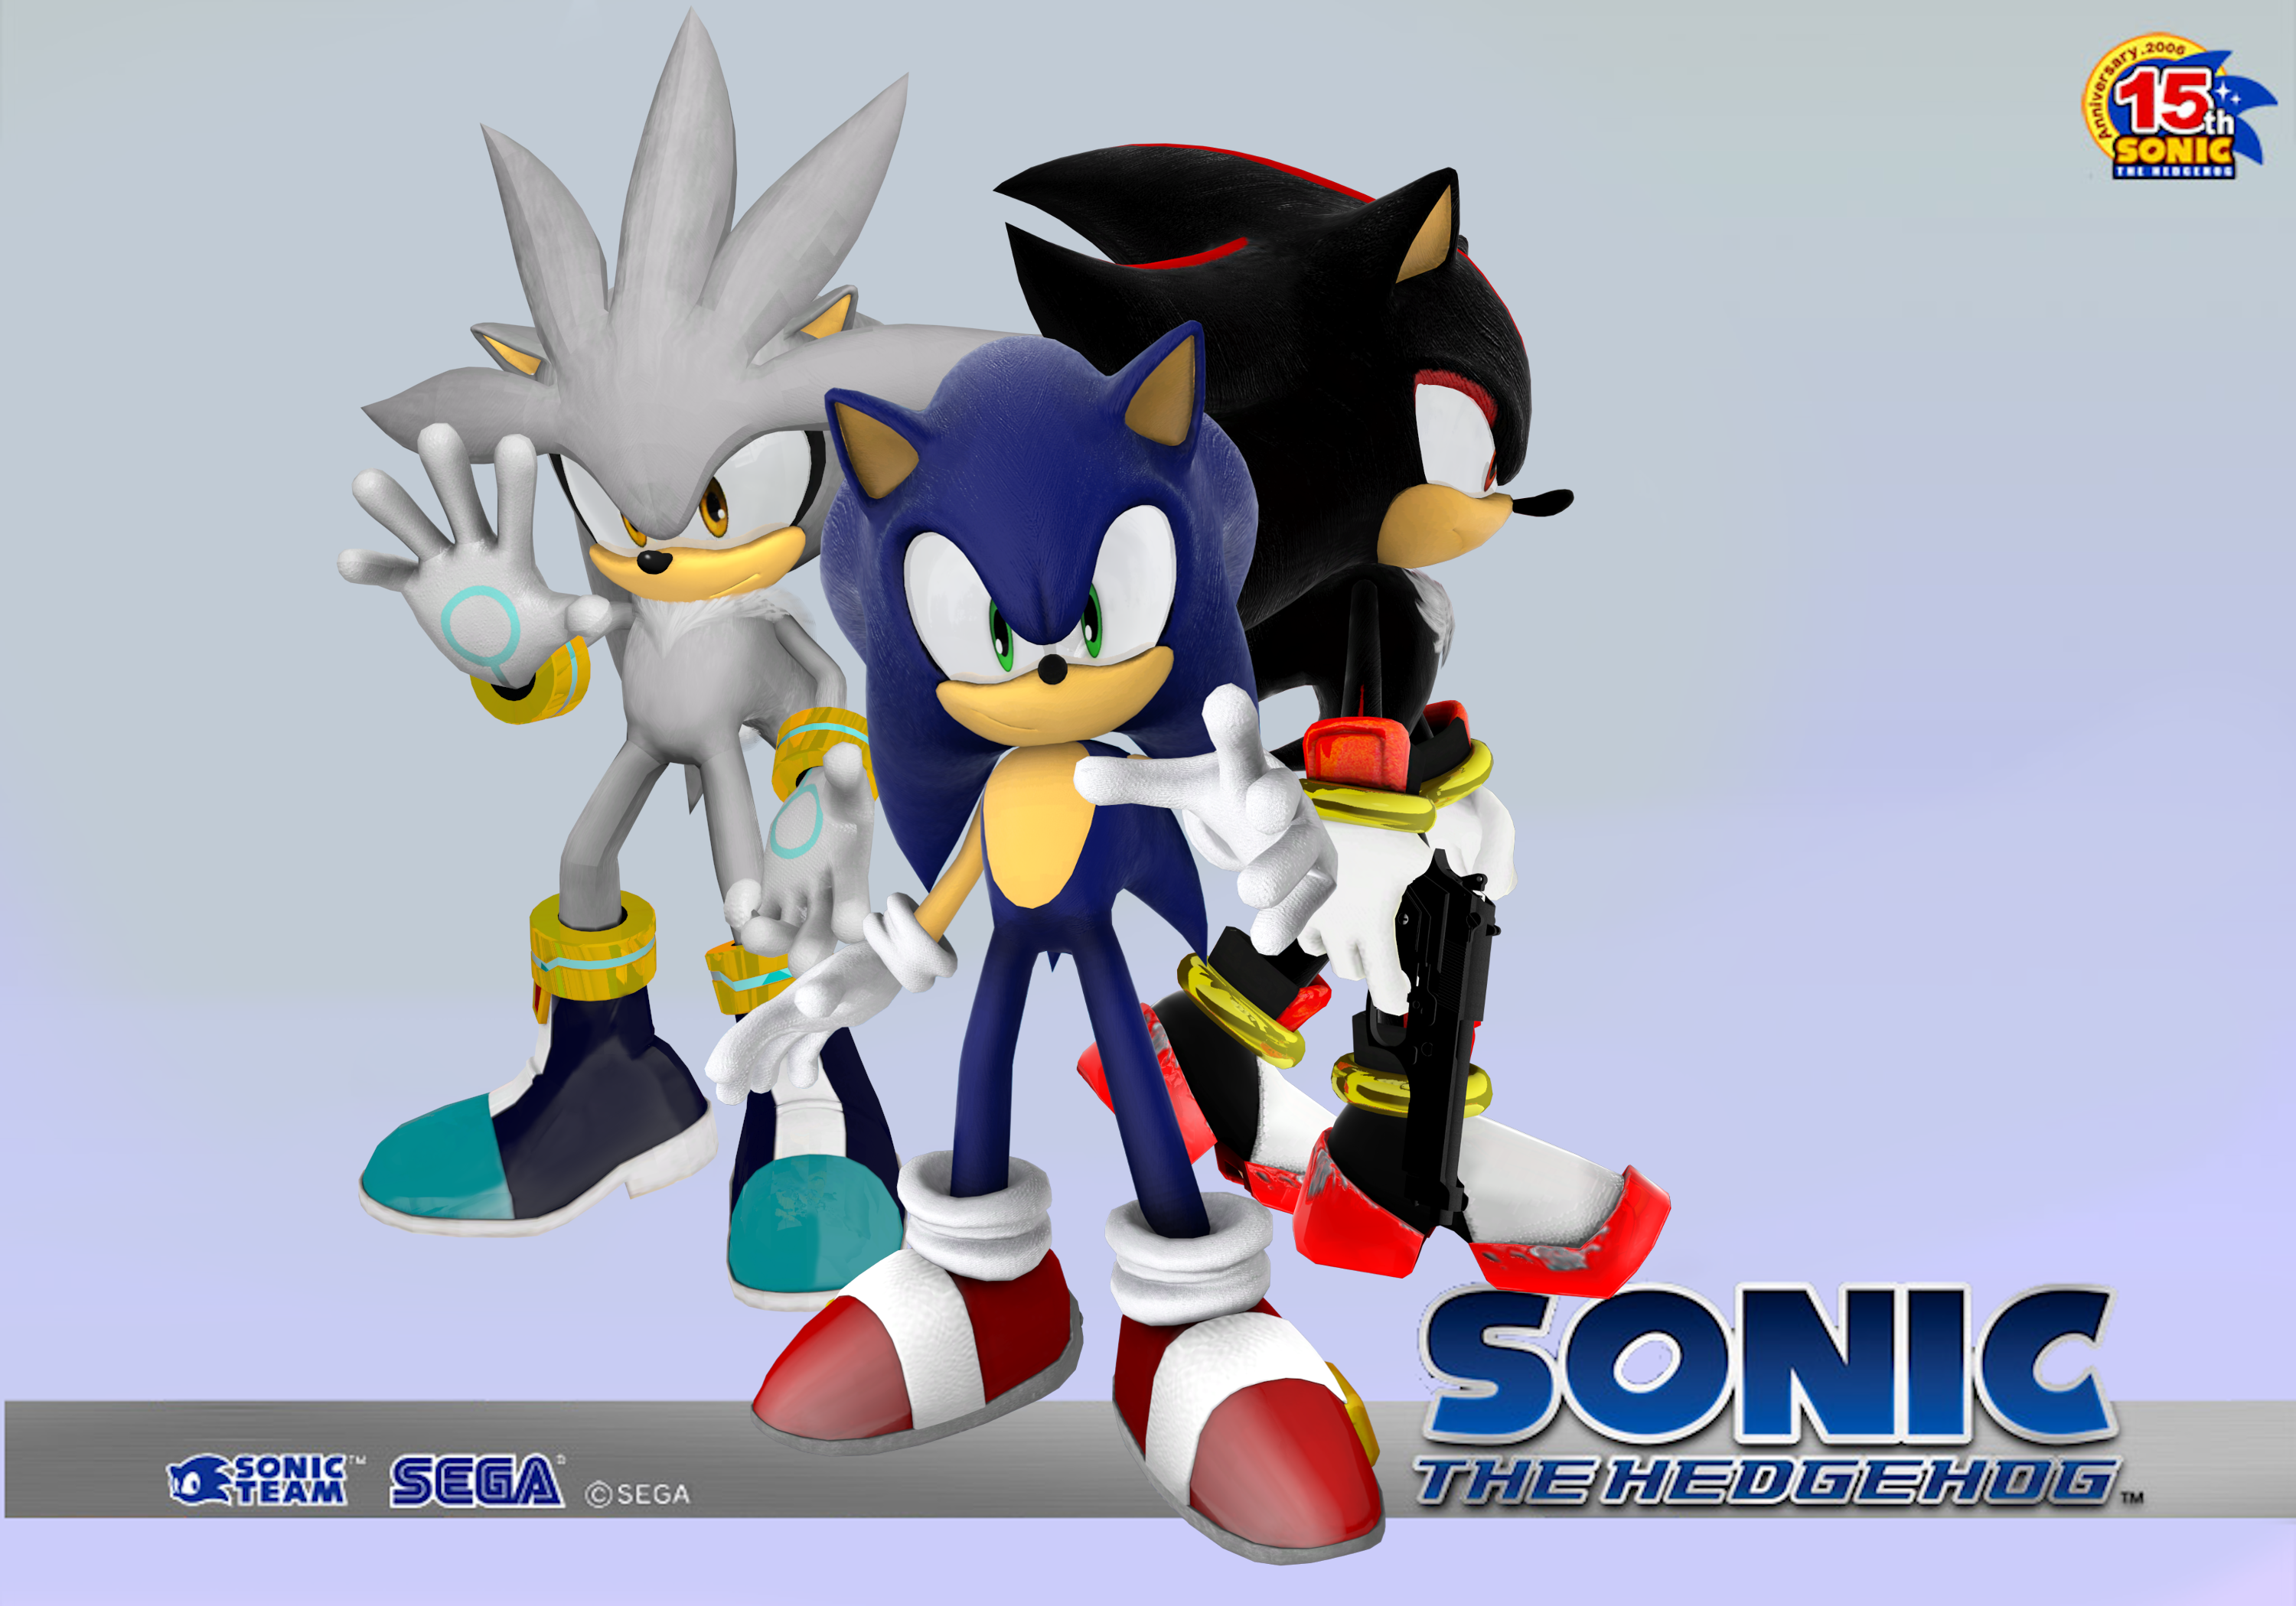 Sonic the Hedgehog Sonic Next Wallpaper